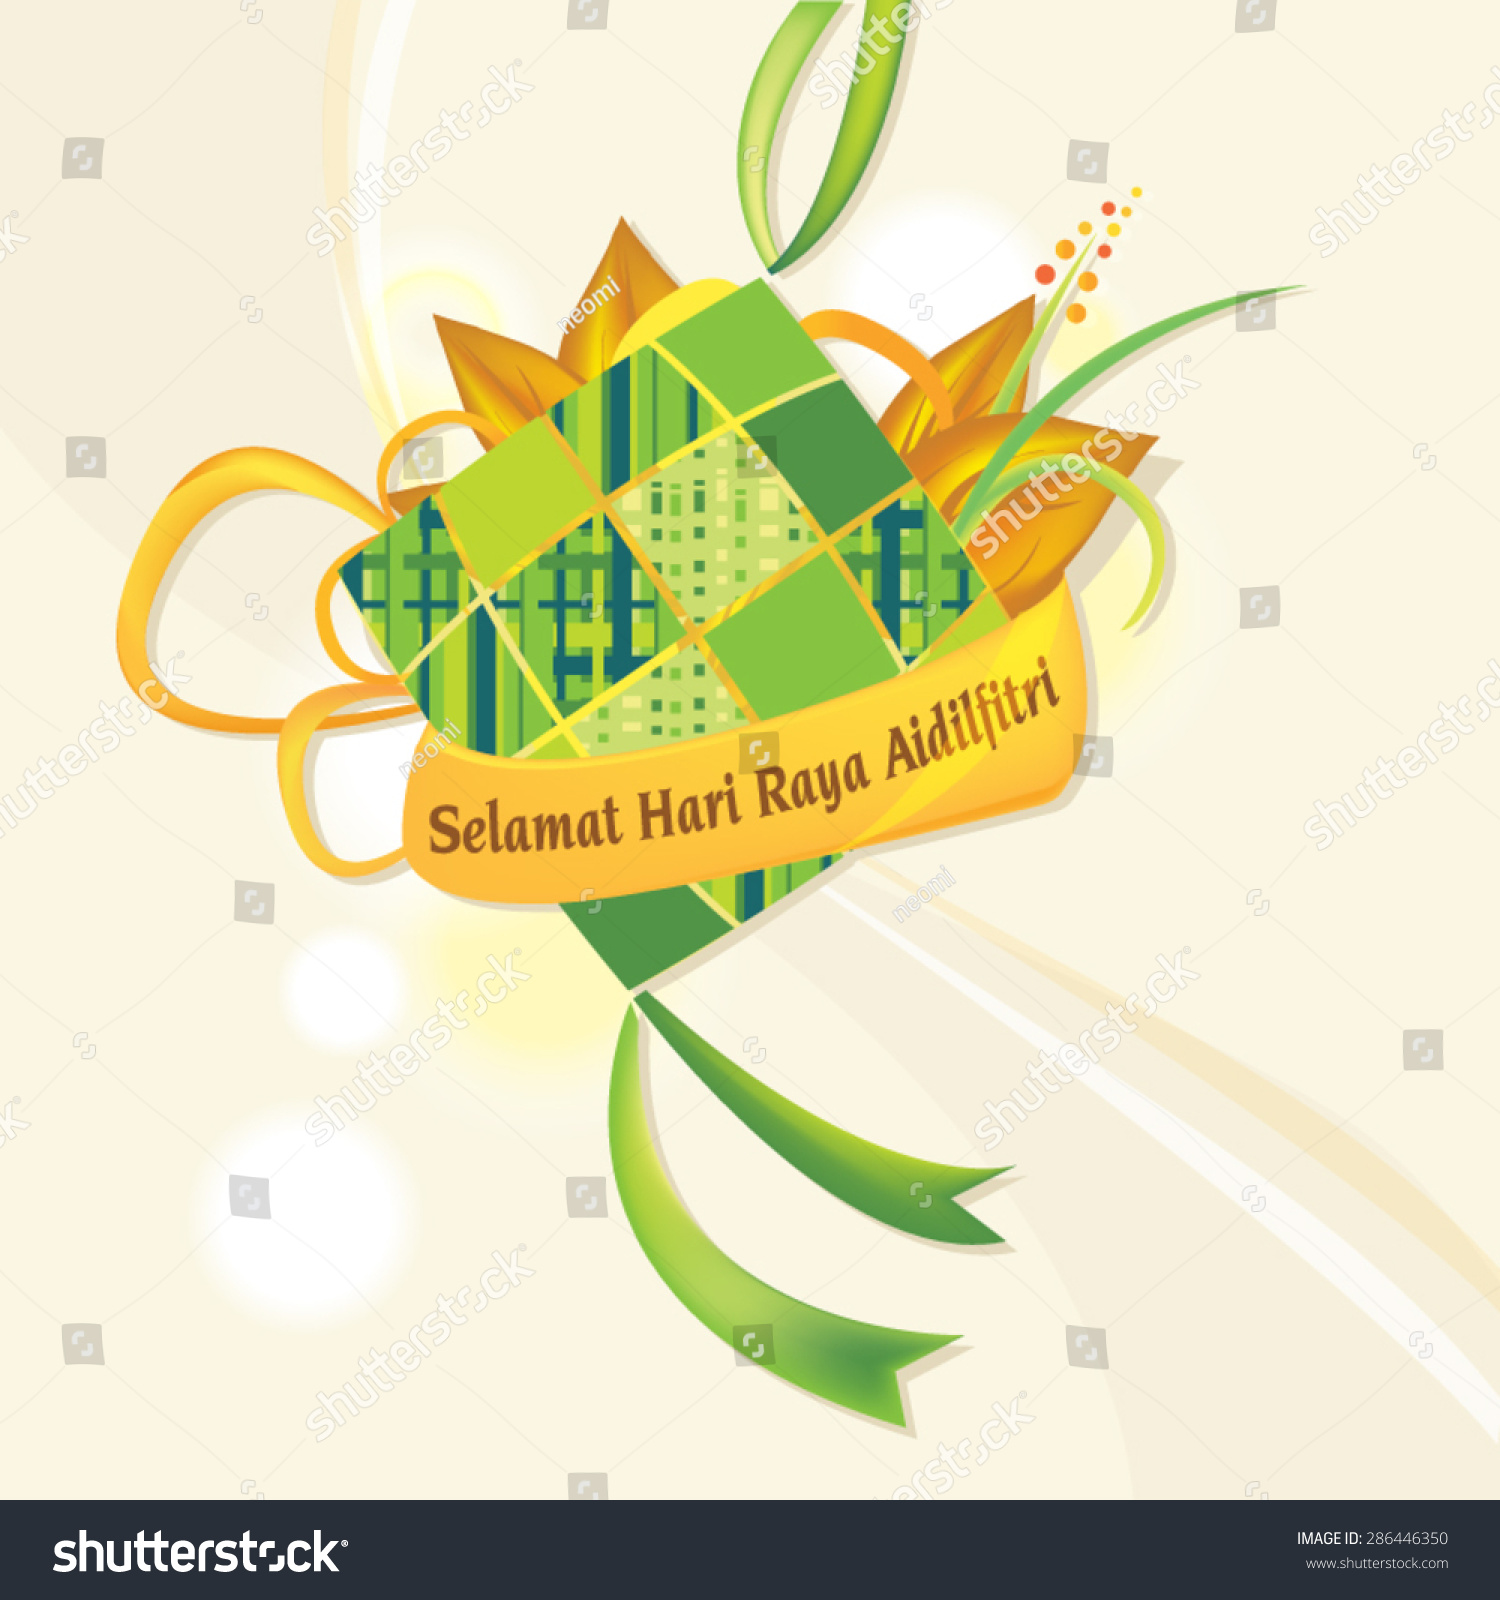 Royalty free hari raya greeting graphic selamat 286446350 hari raya greeting graphic selamat hari raya aidilfitri literally means feast of eid kristyandbryce Image collections